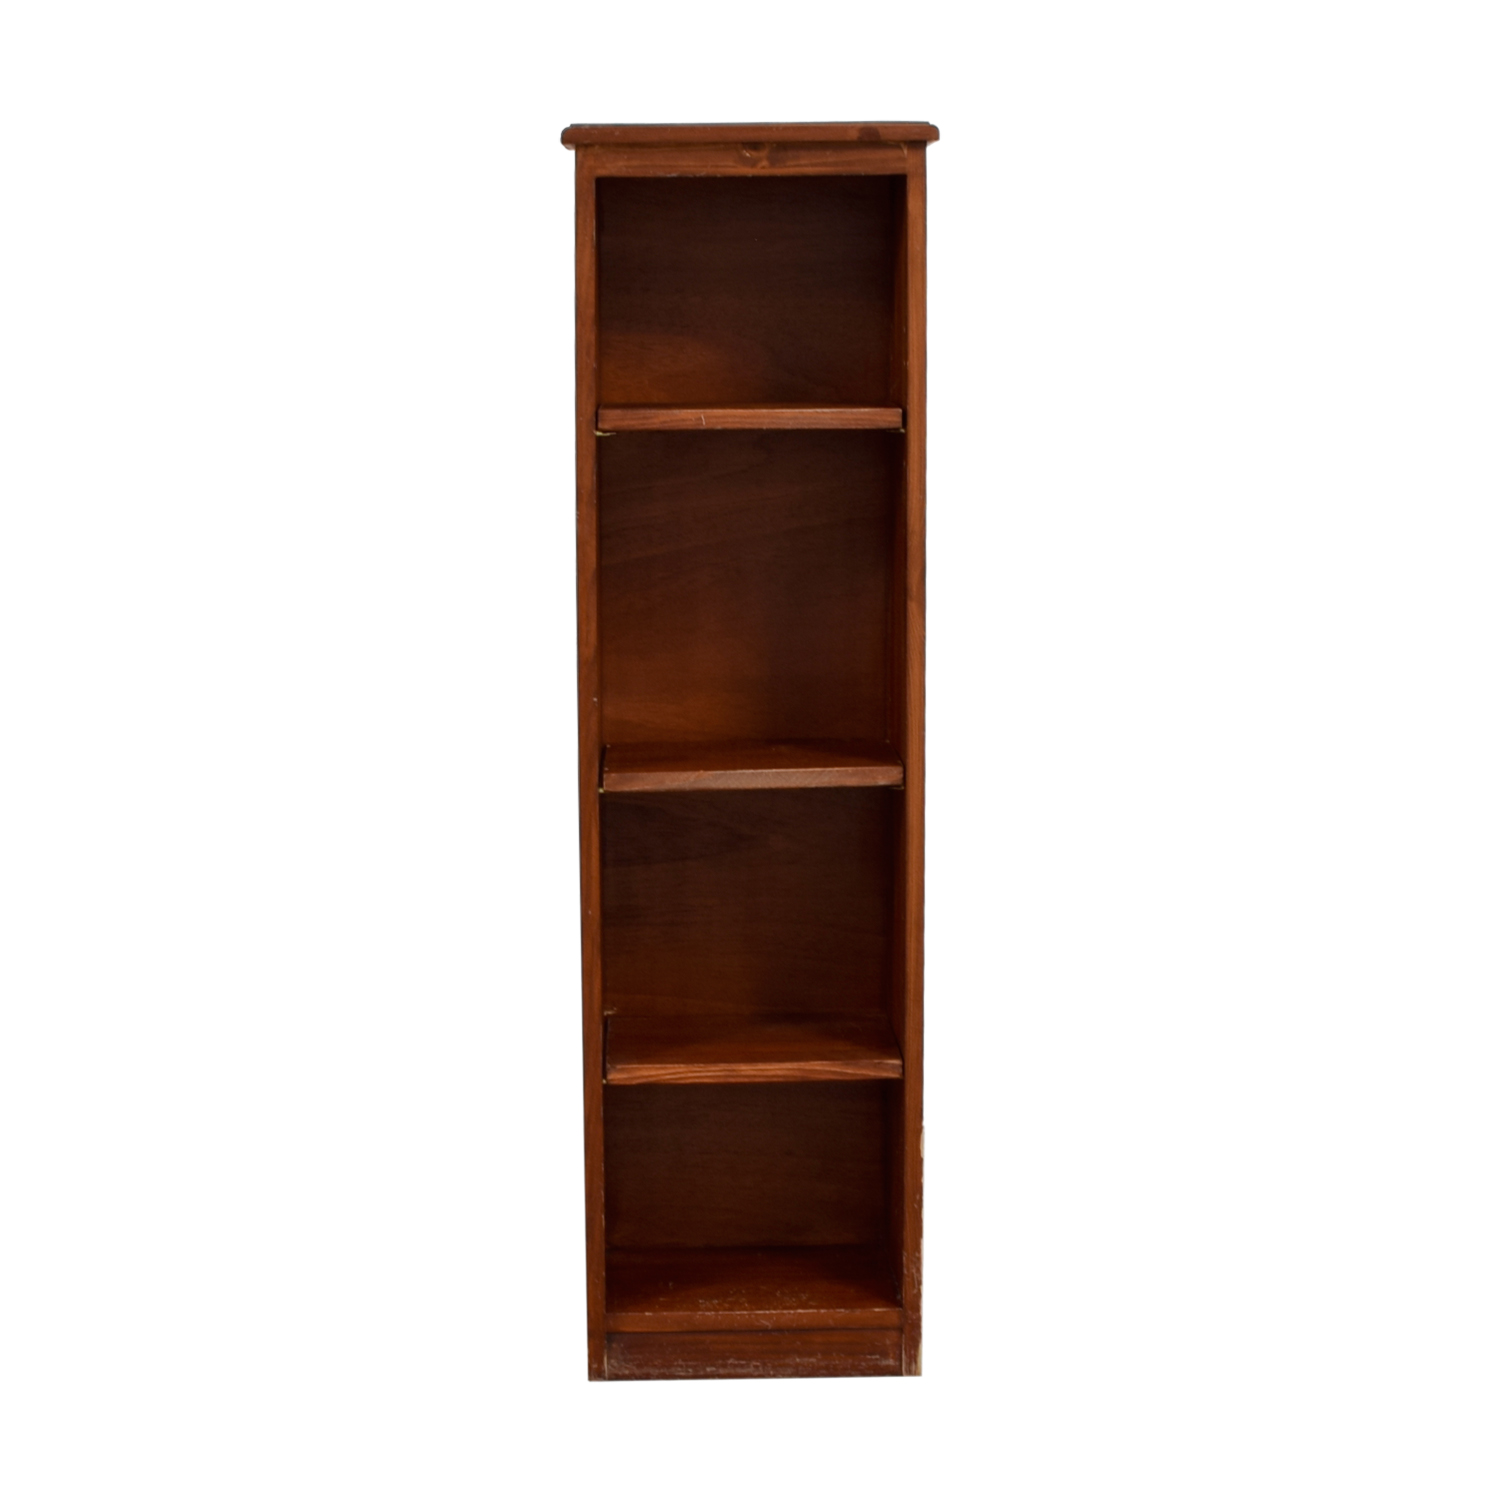 Gotham Cabinet Craft Gotham Cabinet Craft Narrow Wood Bookshelf price